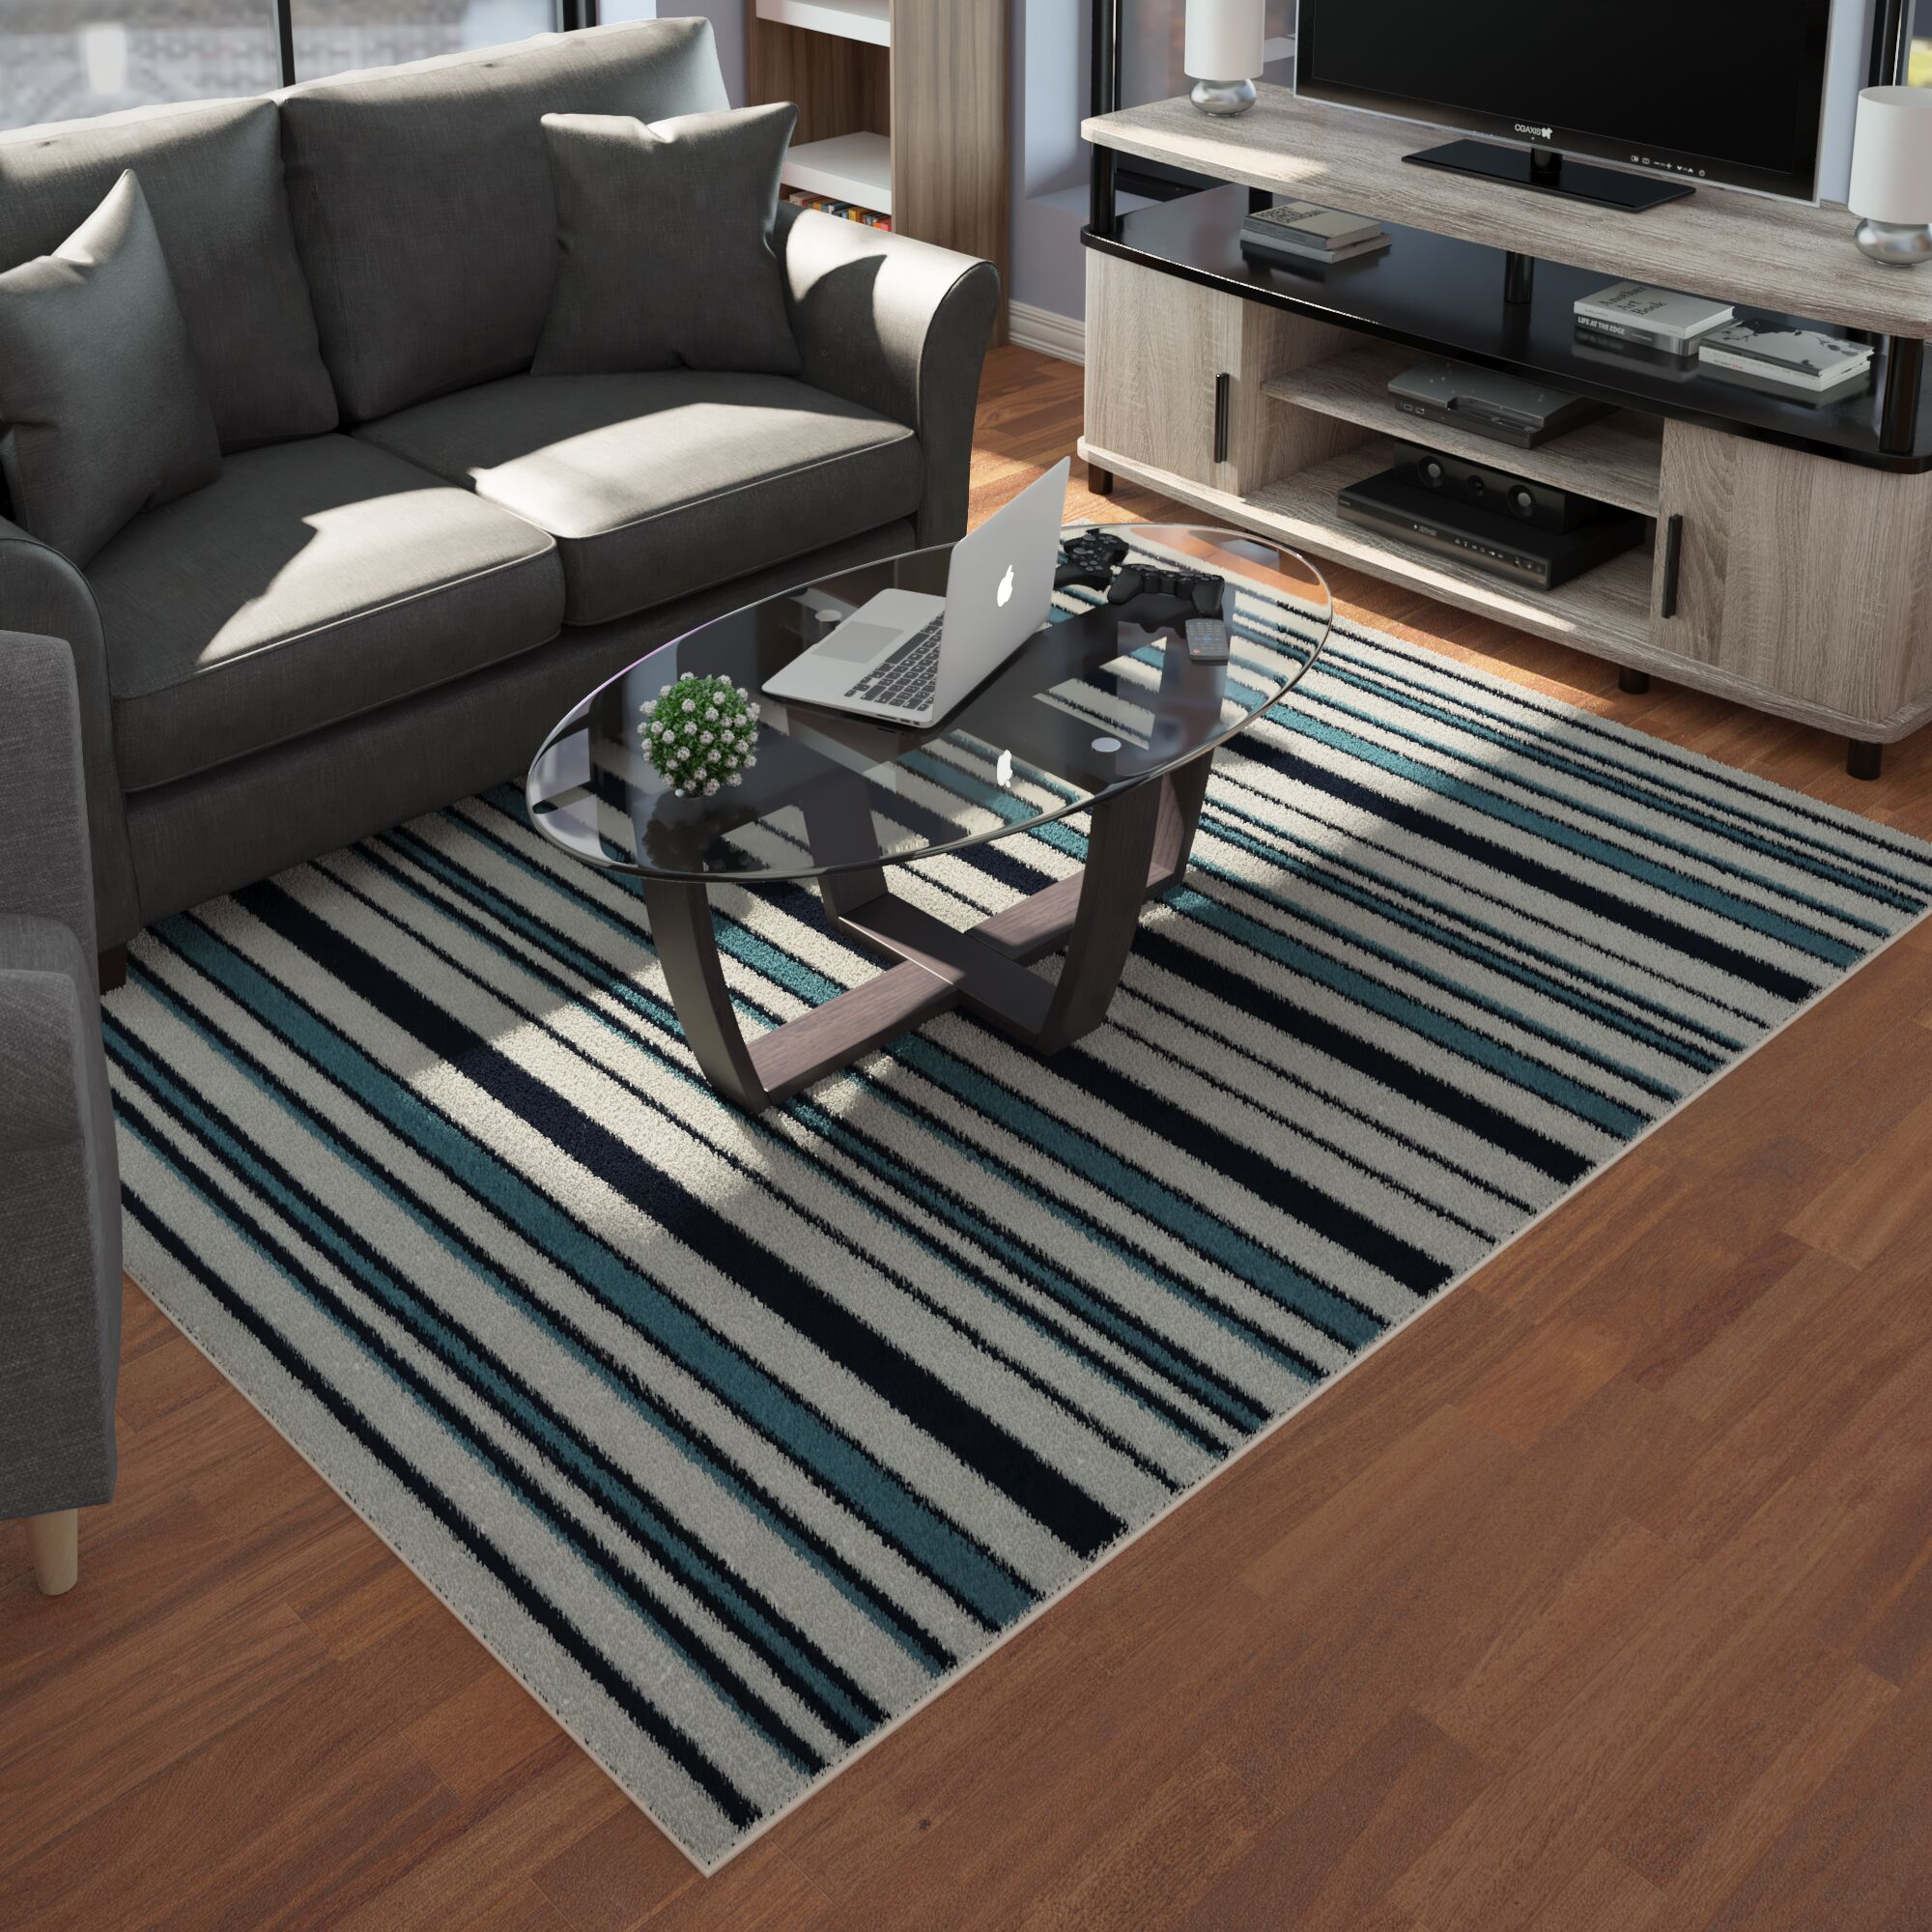 Lucia Black/Gray/Green Indoor/Outdoor Area Rug Rug Size: Rectangle 6'7